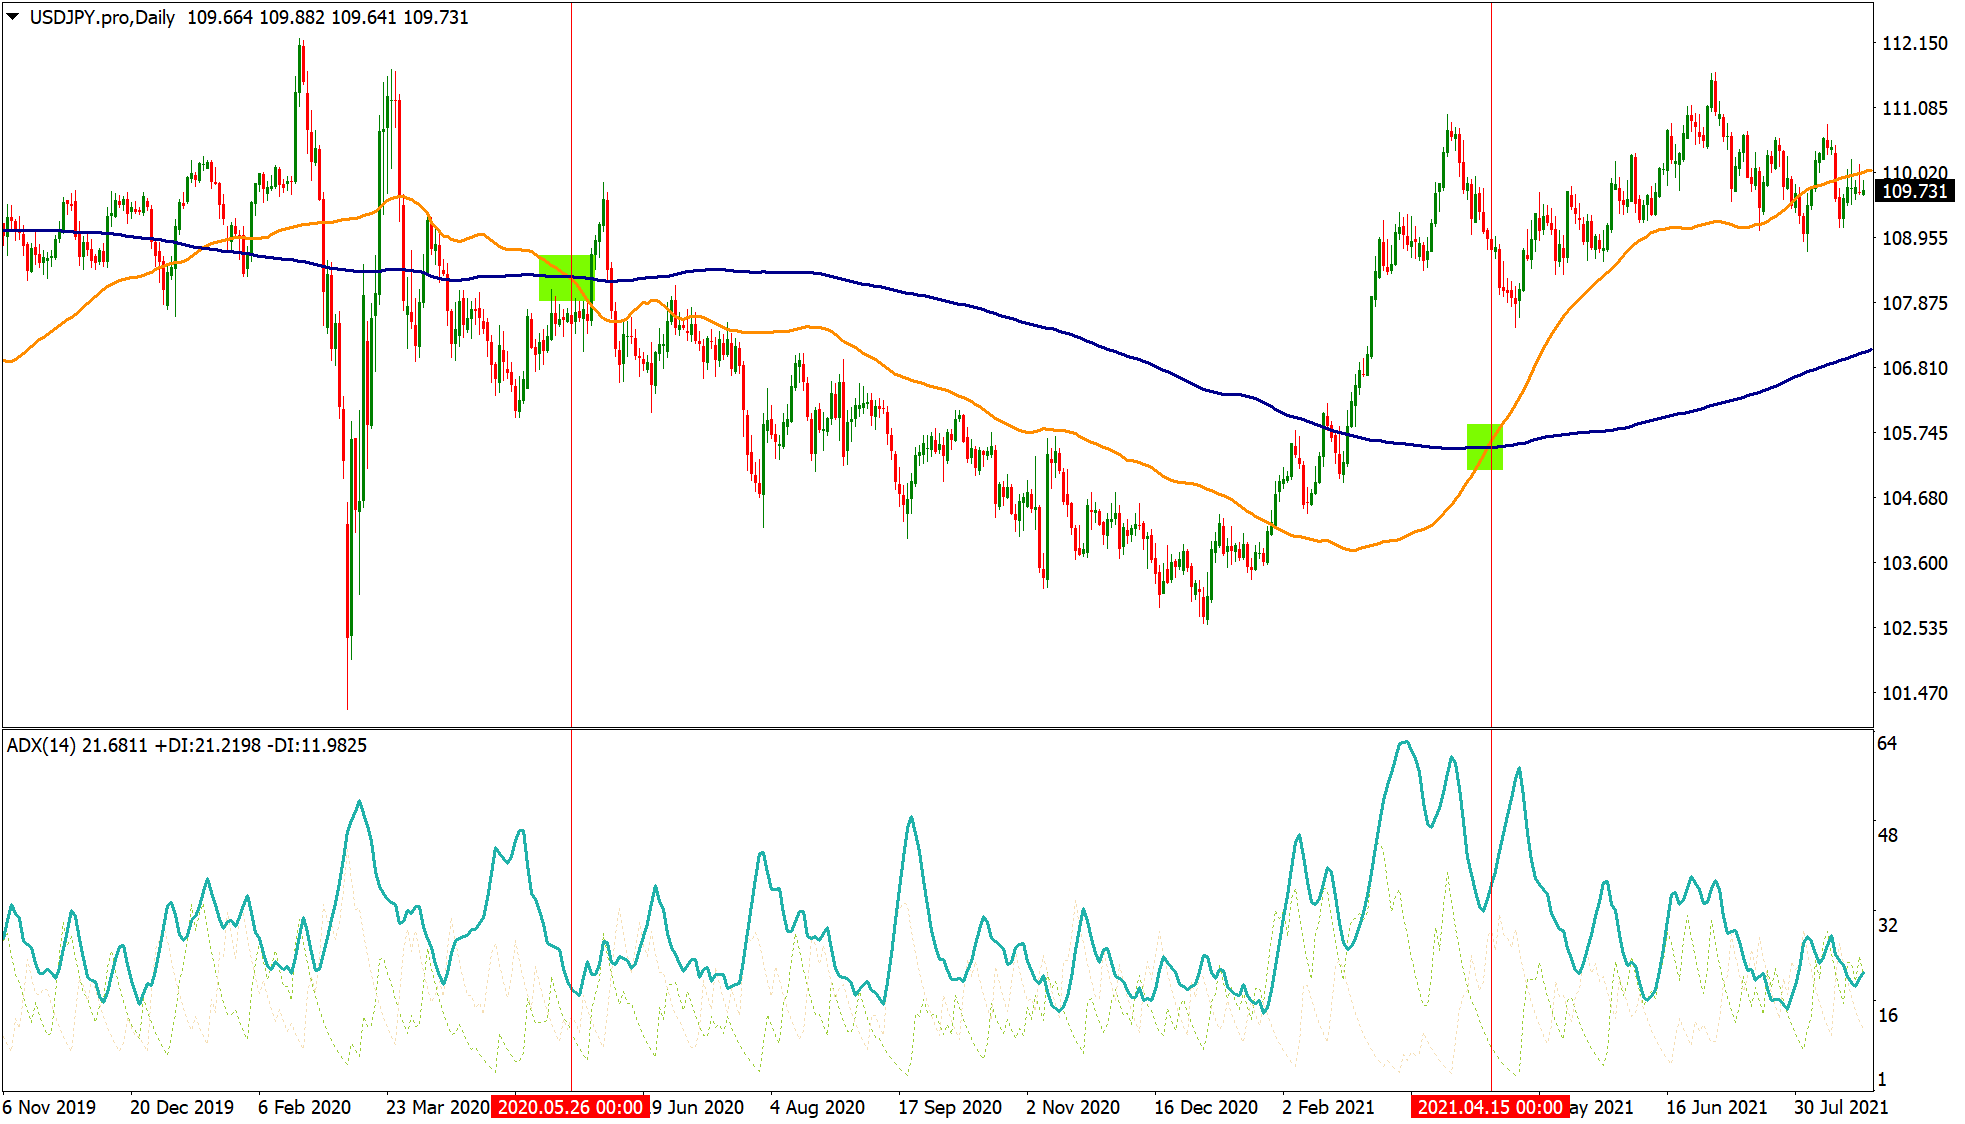 USDJPY chart with trend trading strategy